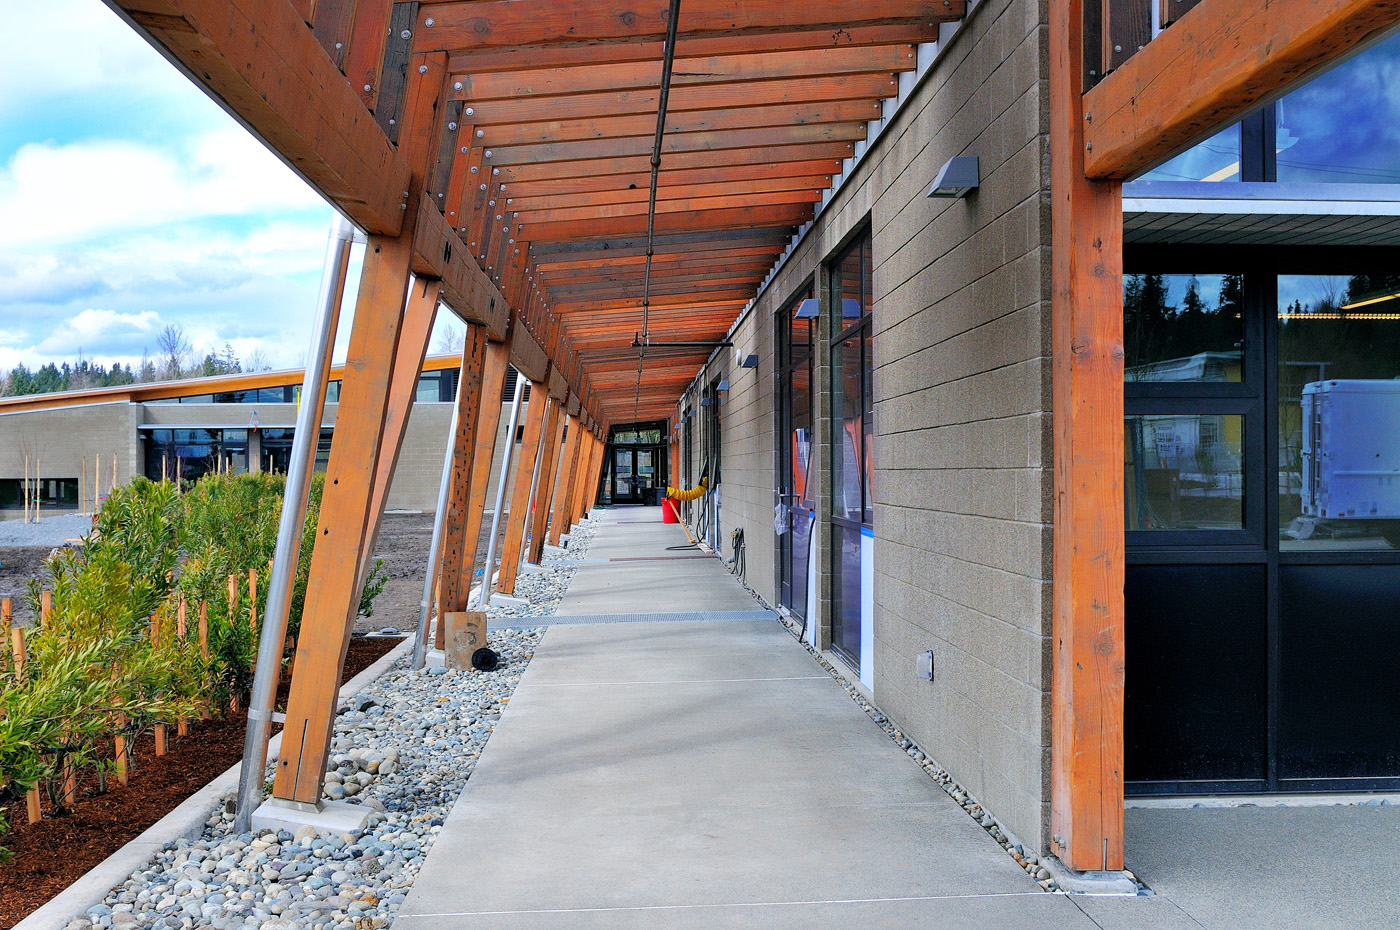 Covered Walkway Construction : Seattle djc local business news and data